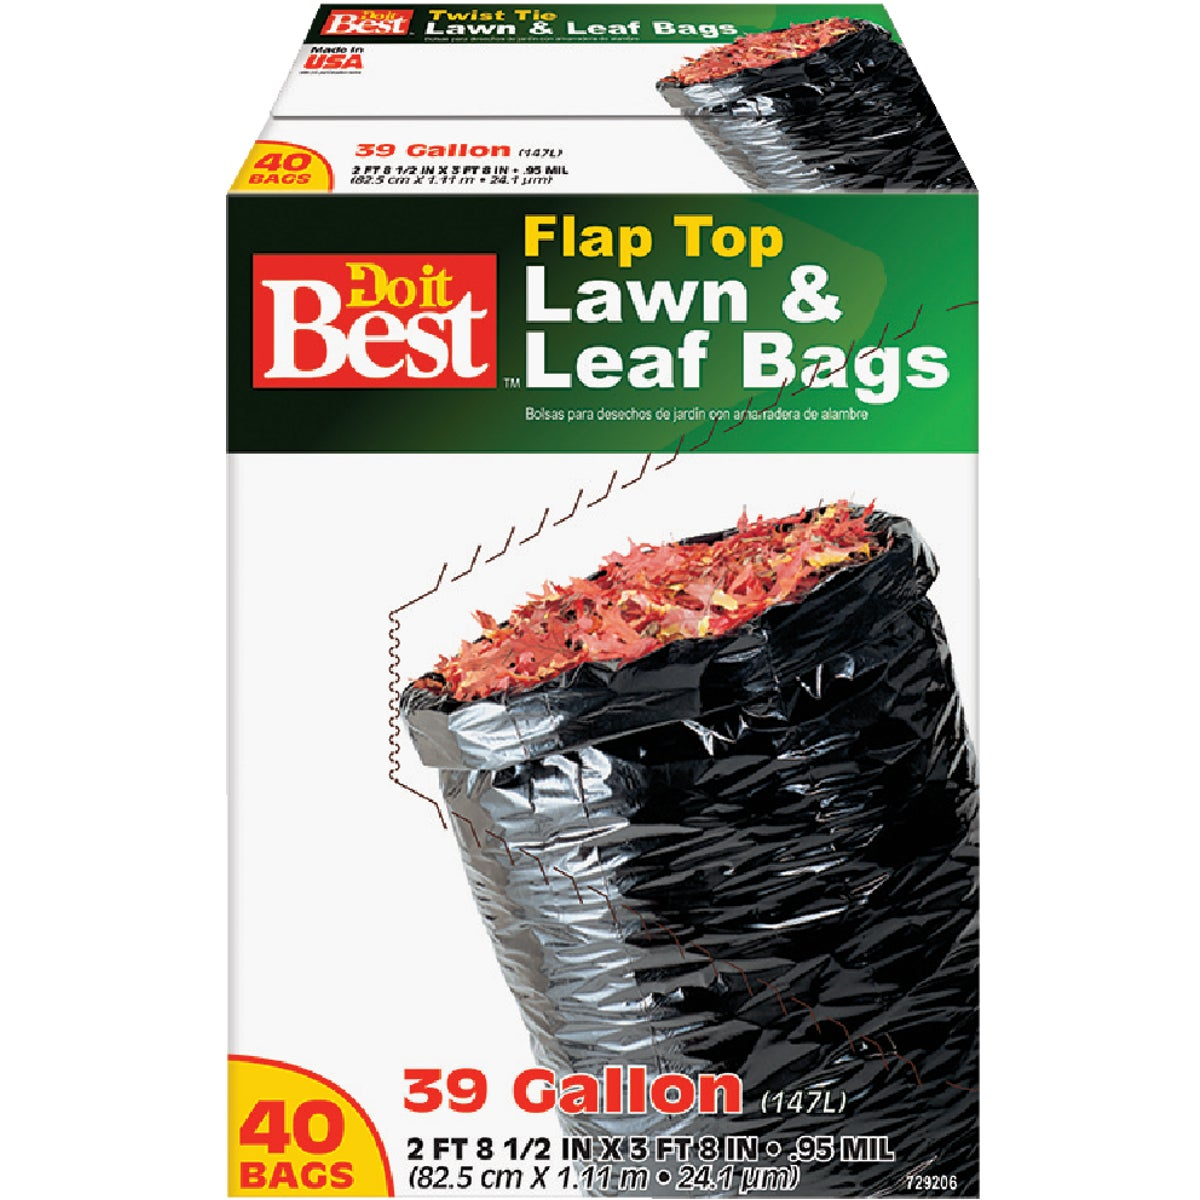 40CT 39GAL LAWN&LEAF BAG - 729206 by Presto Products